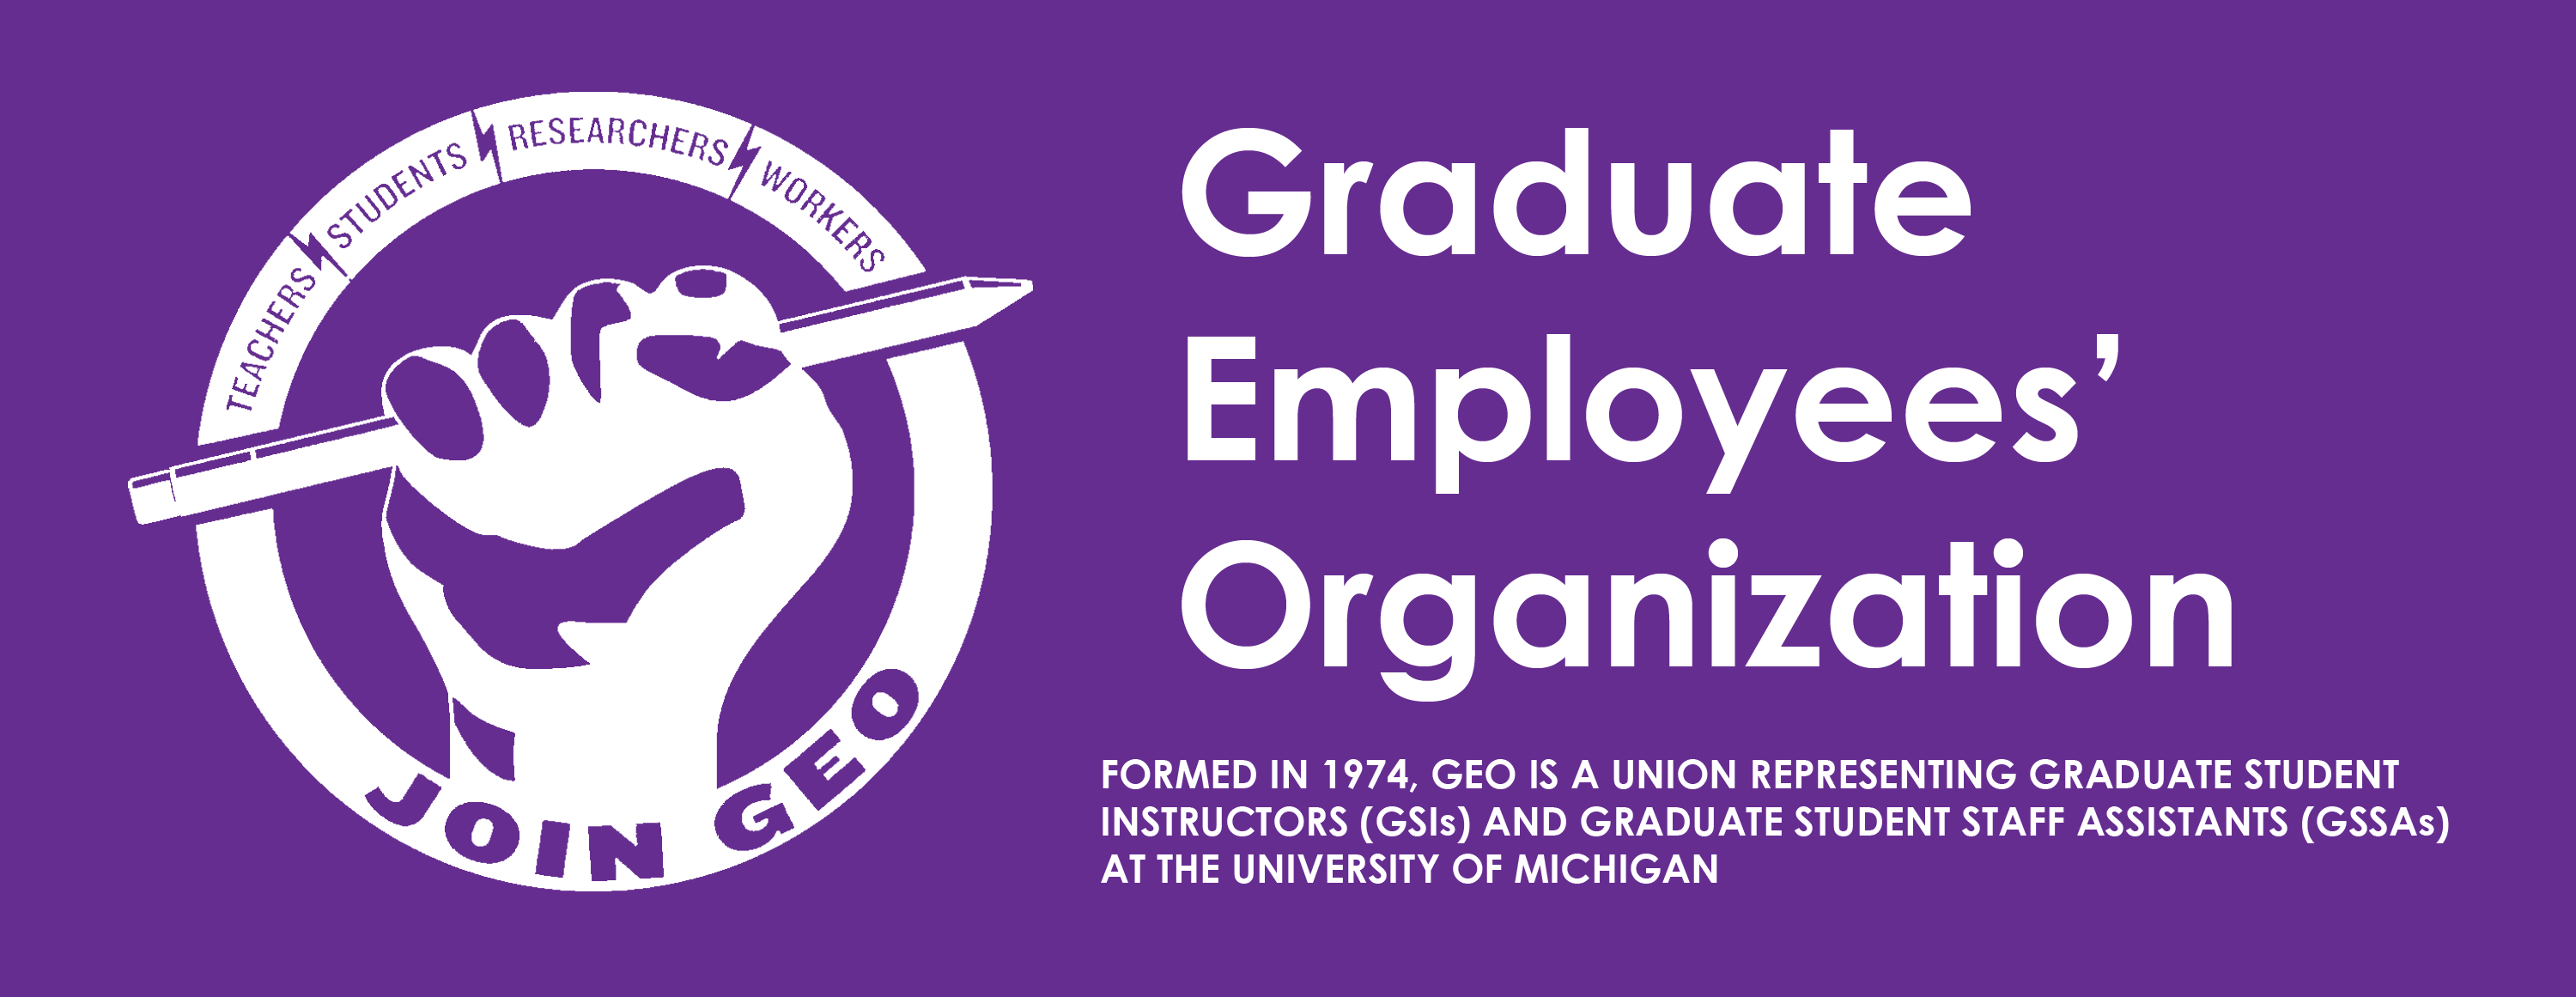 Graduate Employees' Organization (GEO)